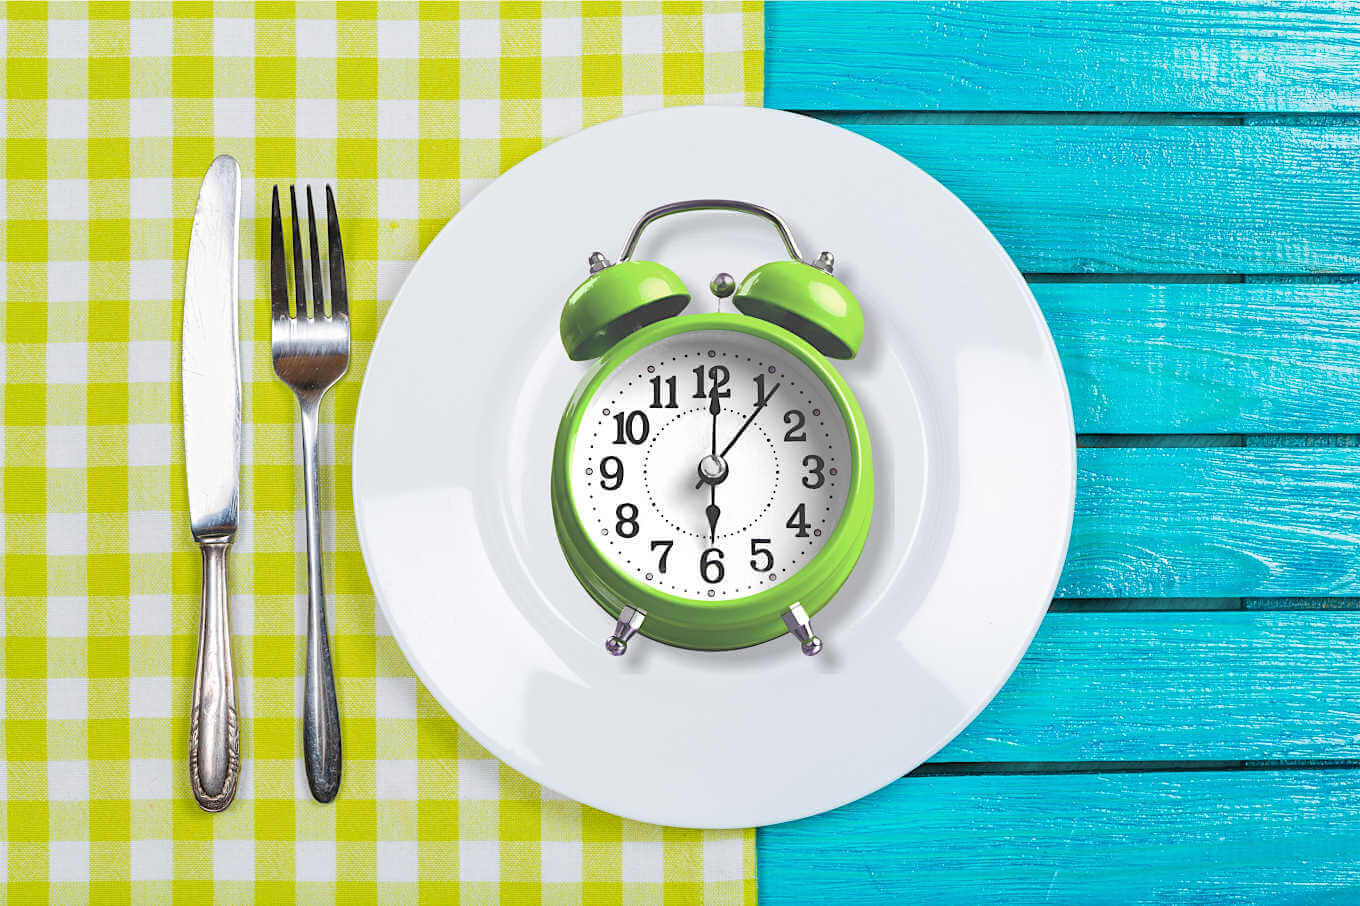 Fasting and Chronic Kidney Disease: Helpful or Not?